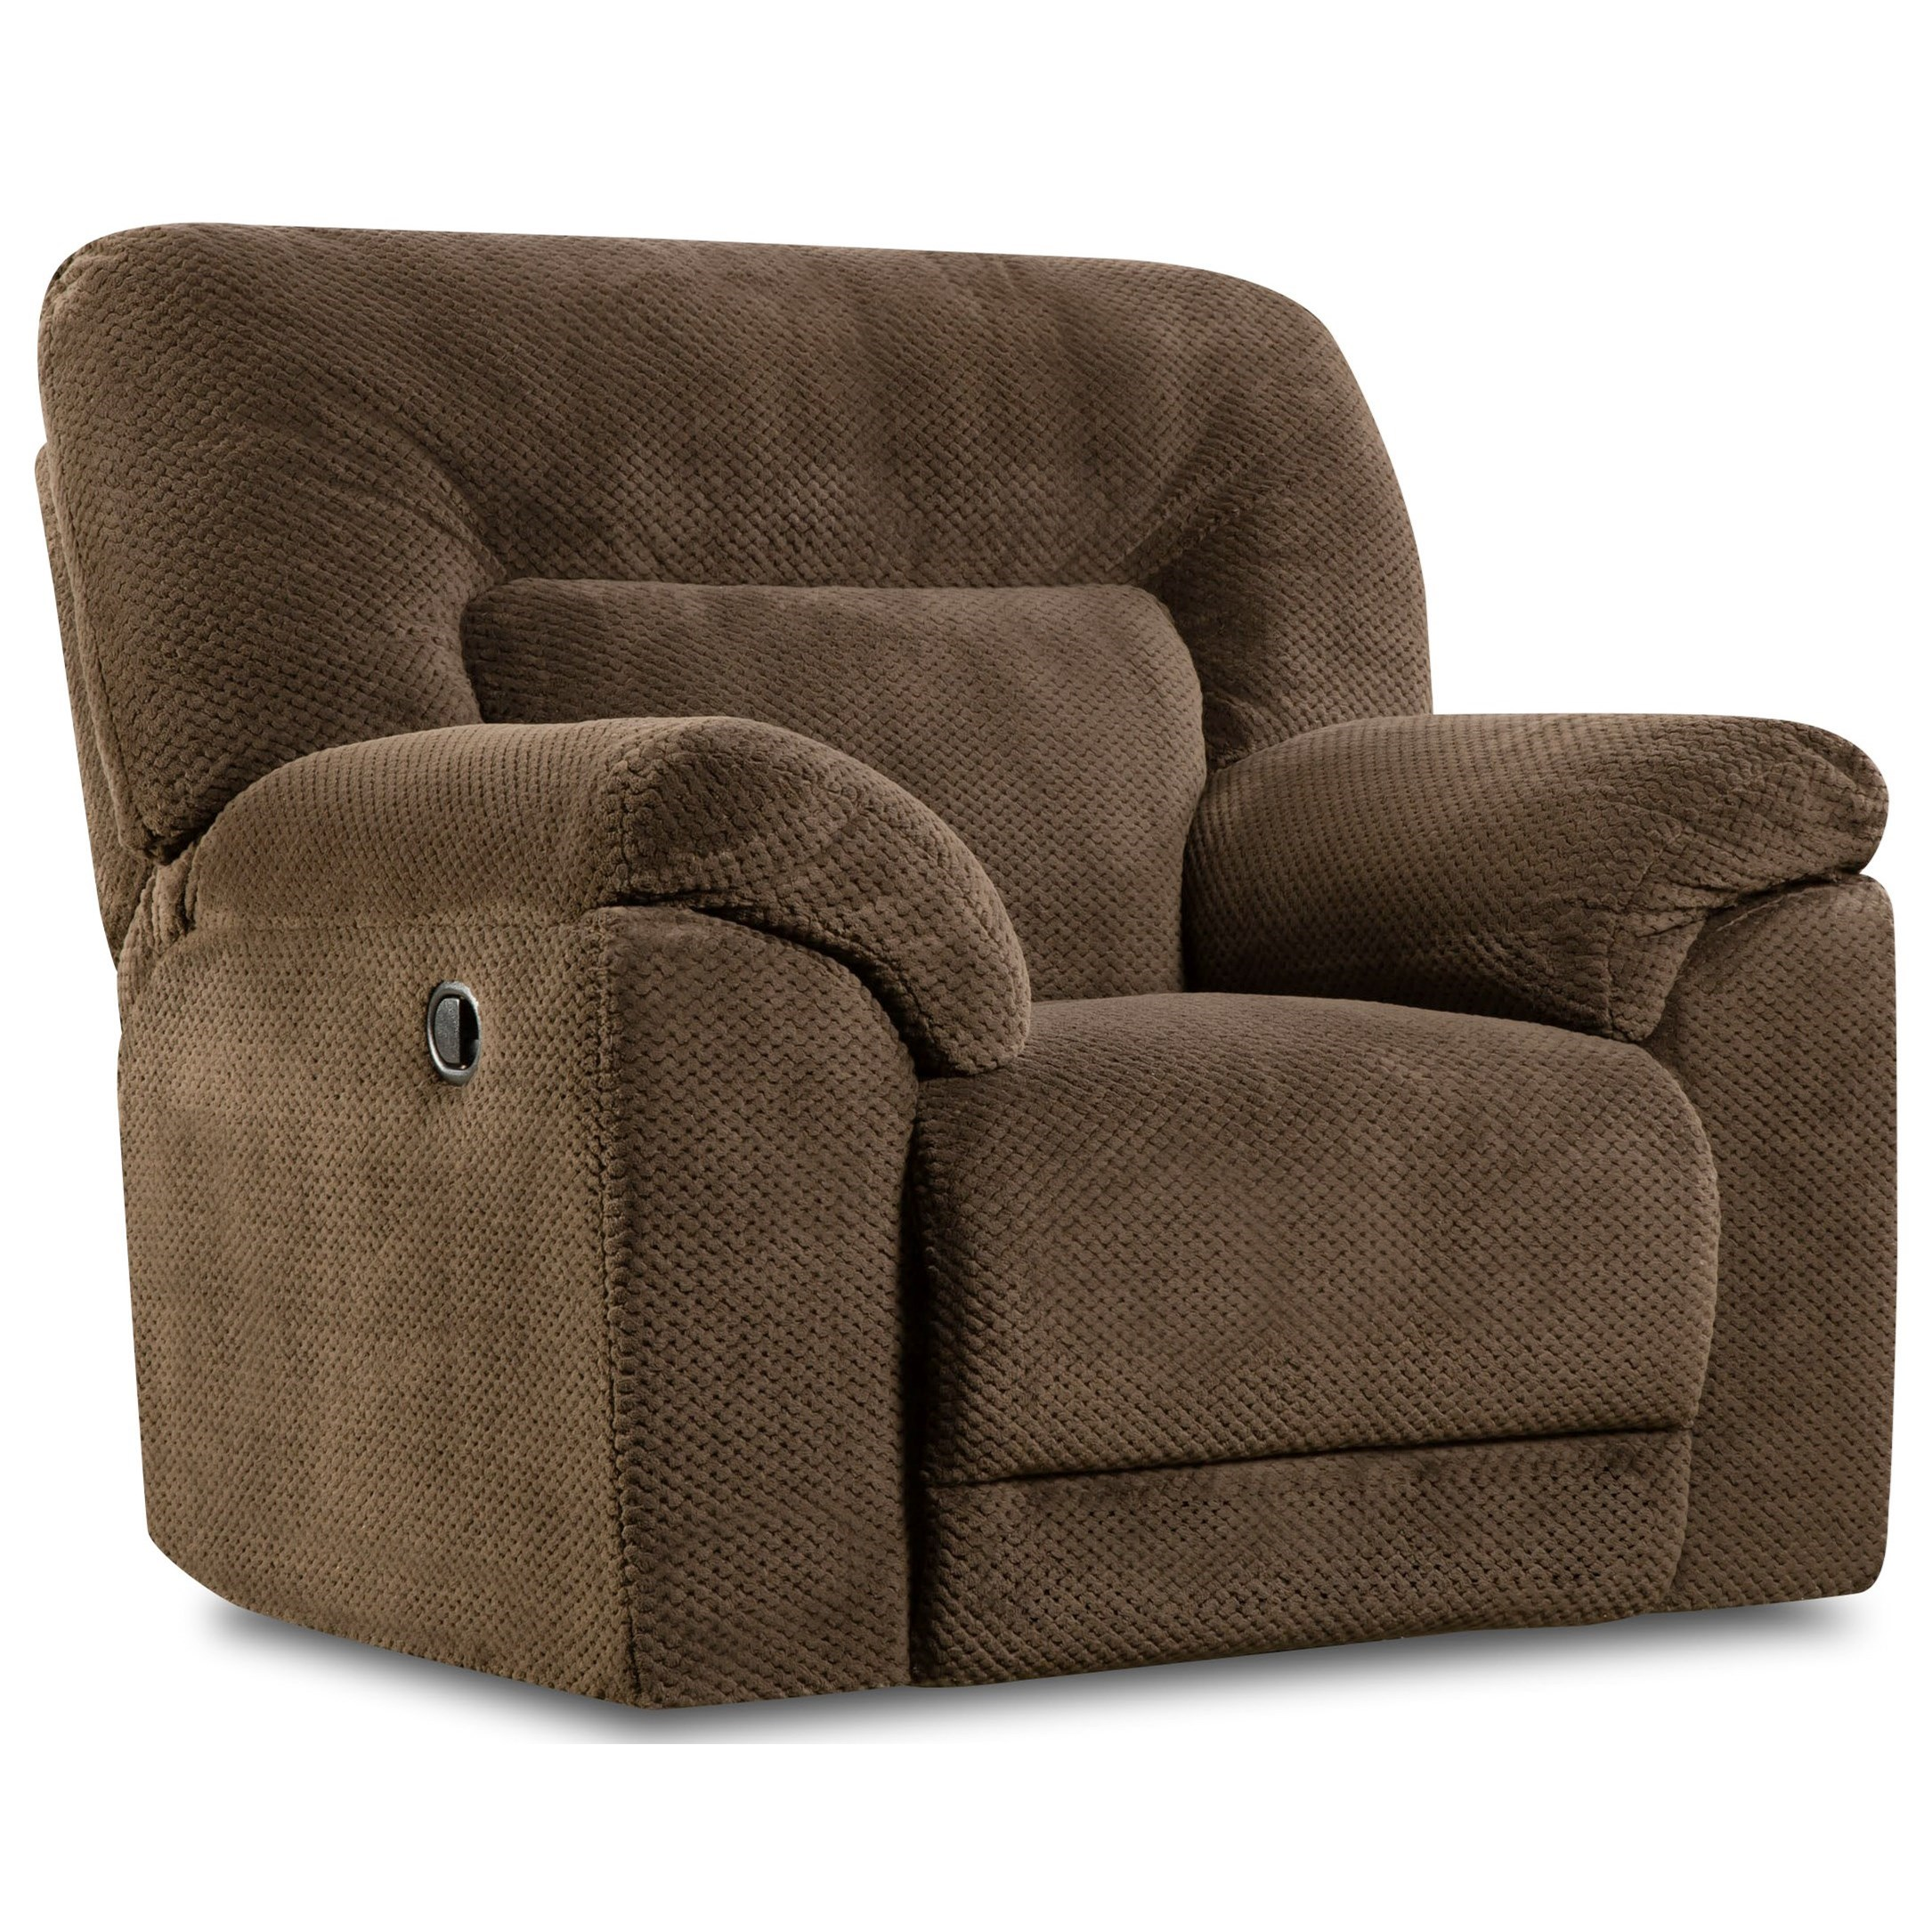 50570 Cuddler Recliner  by United Furniture Industries at Dream Home Interiors